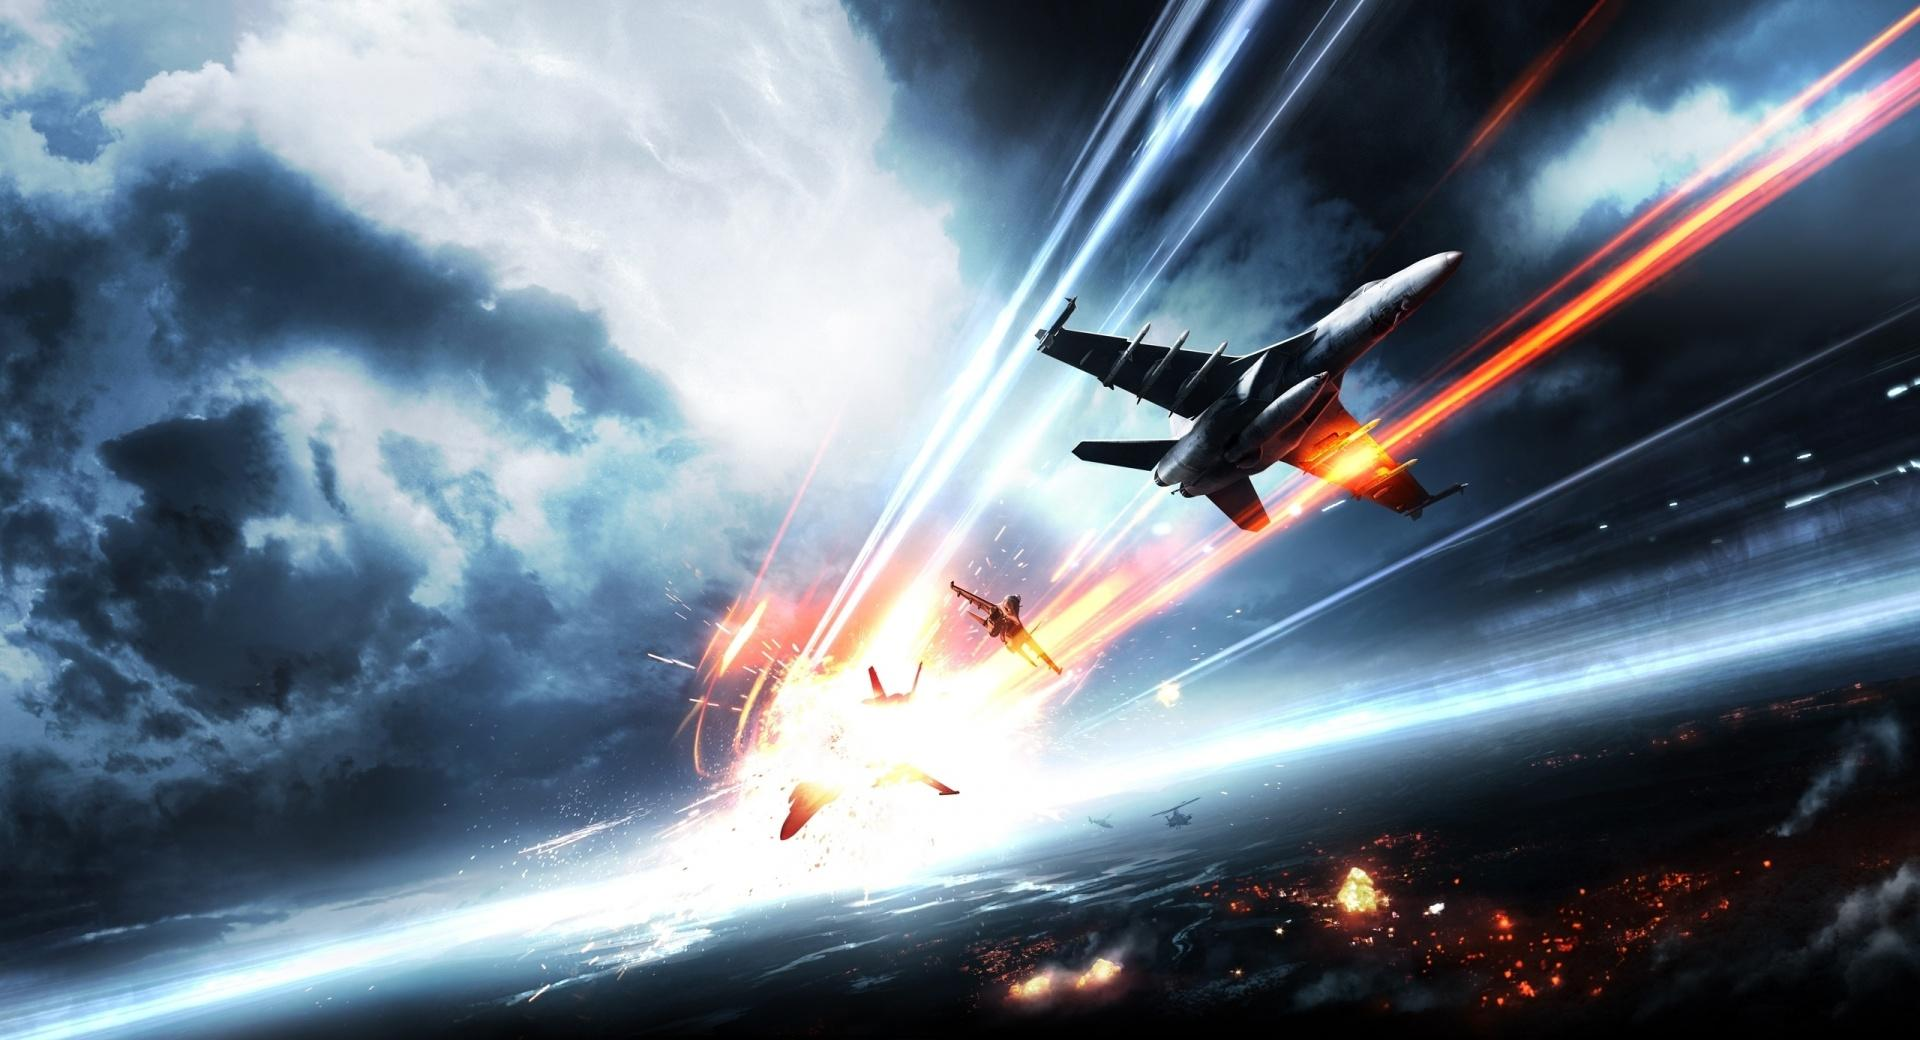 Battlefield 3 - Aircrafts wallpapers HD quality